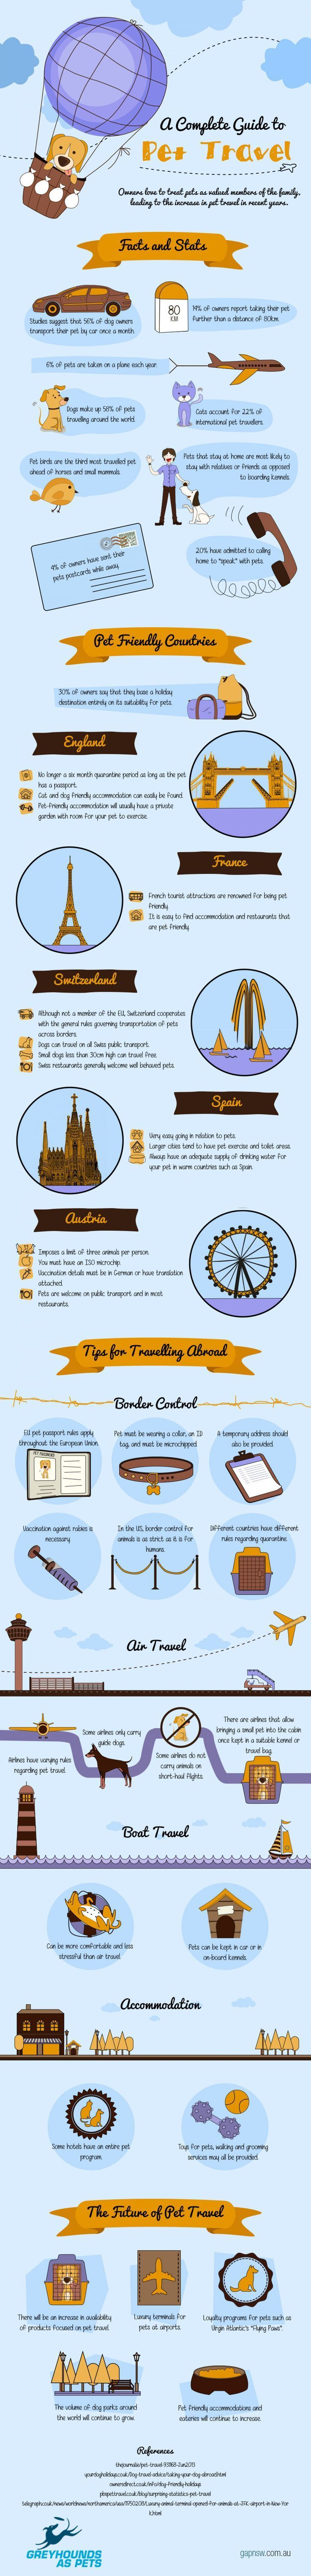 Complete Guide to Pet Travel: a helpful Infographic